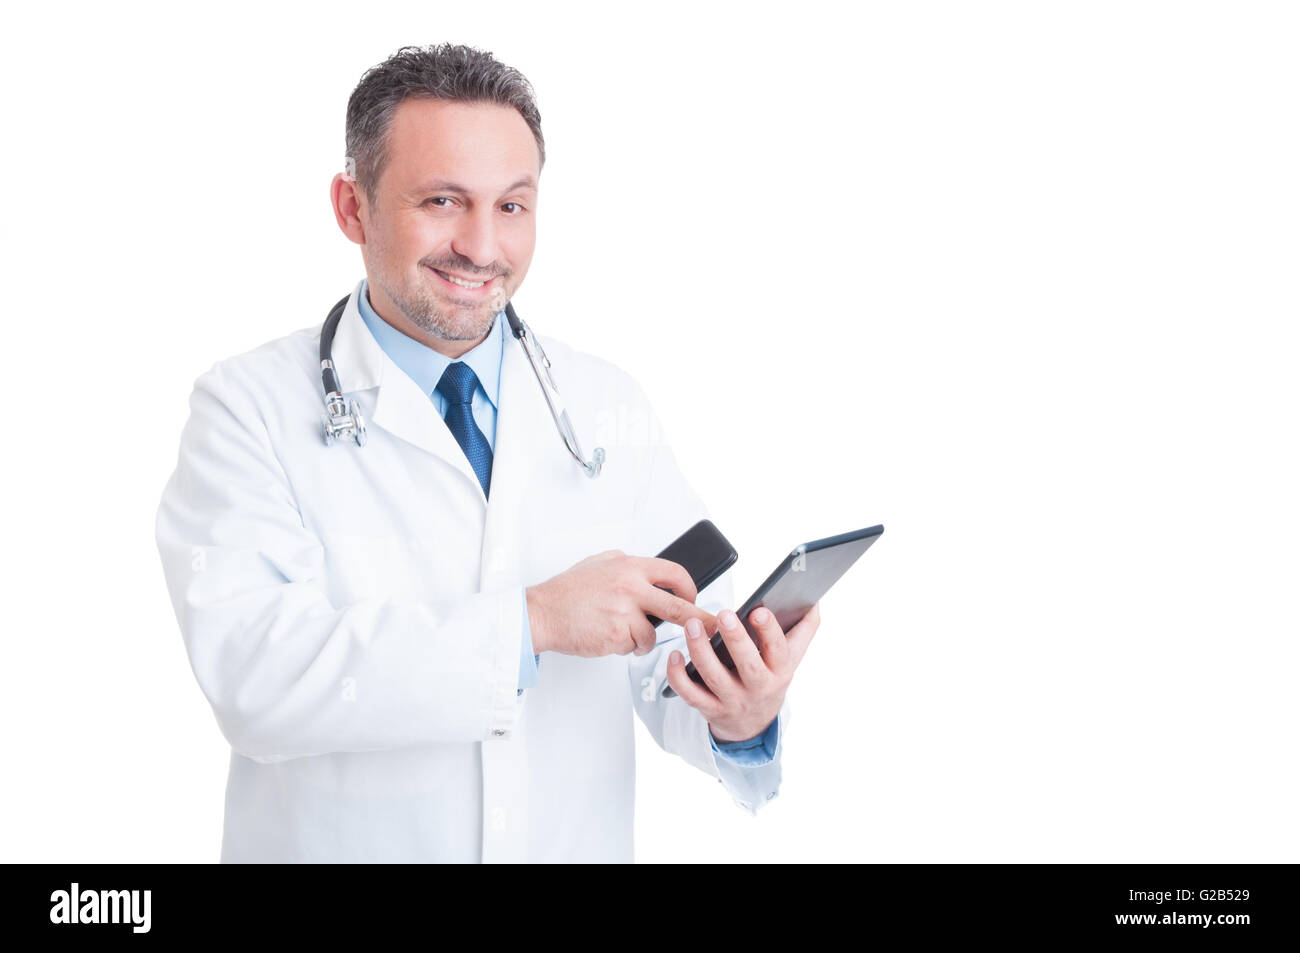 Busy medic or doctor using tablet and phone isolated on white background - Stock Image